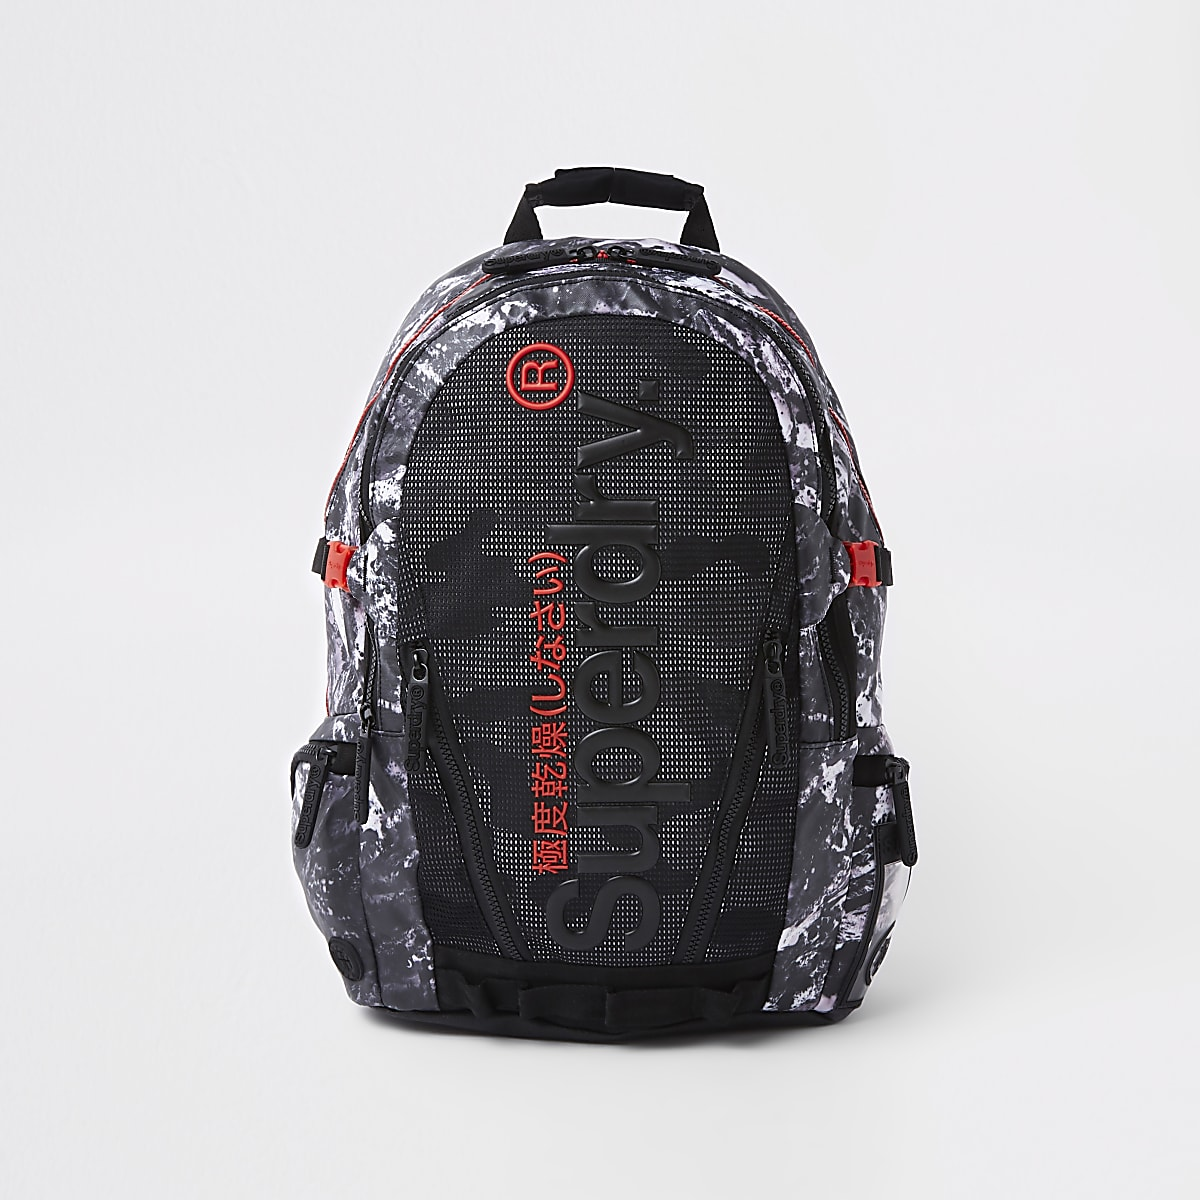 100% authentic e0eb0 1e917 Superdry black mesh backpack